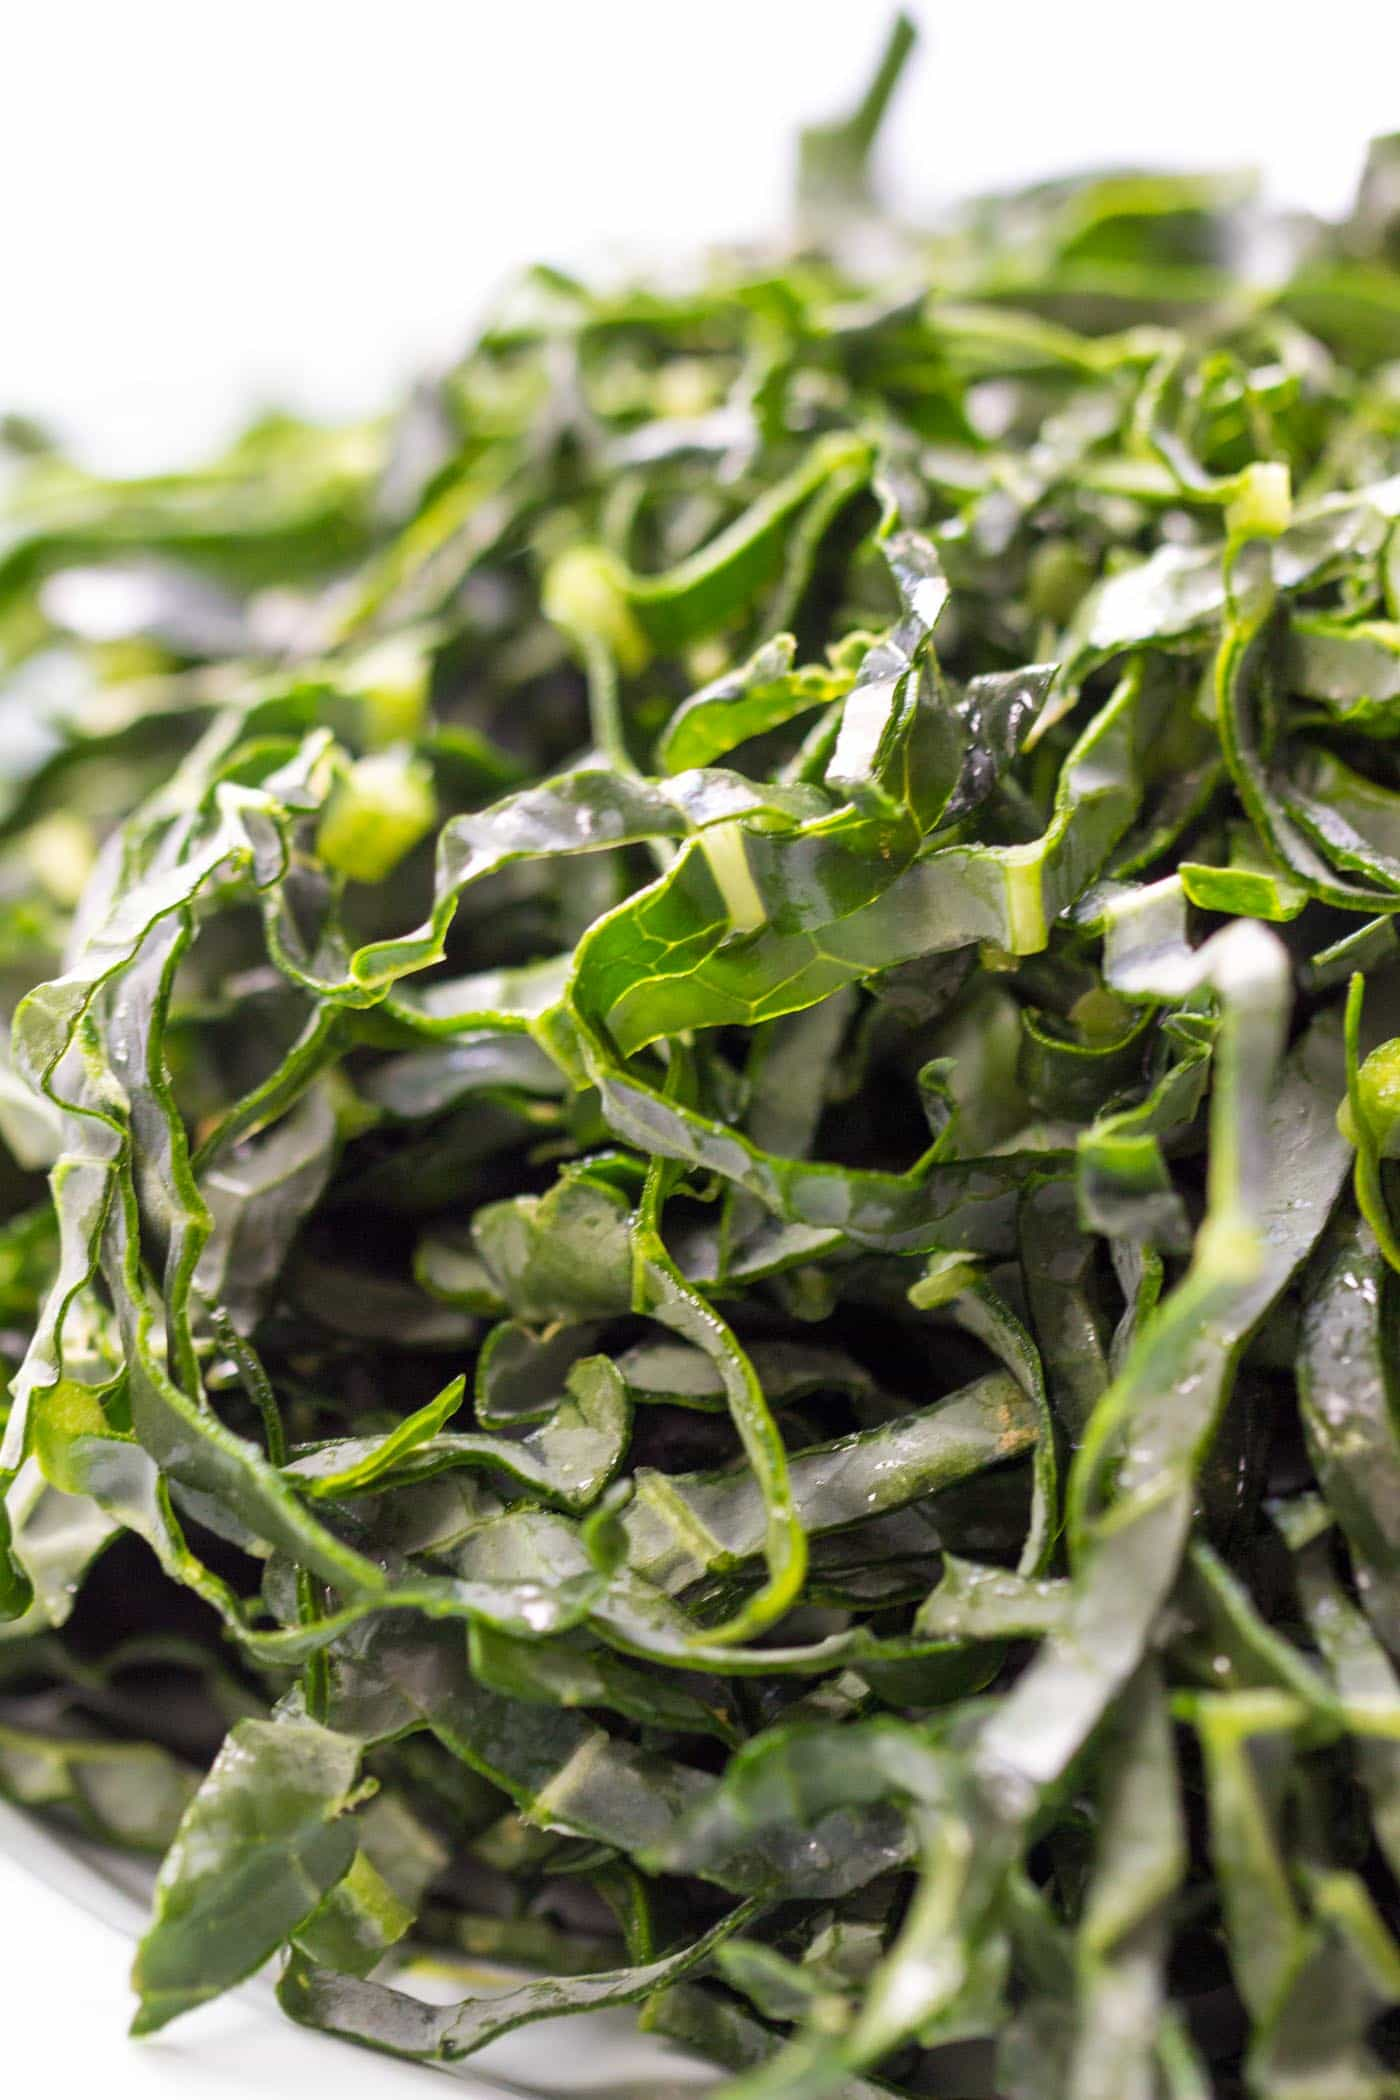 Finely shredded kale makes the perfect base for a detoxifying salad -- just slice it super thinly and add whatever toppings you'd like!